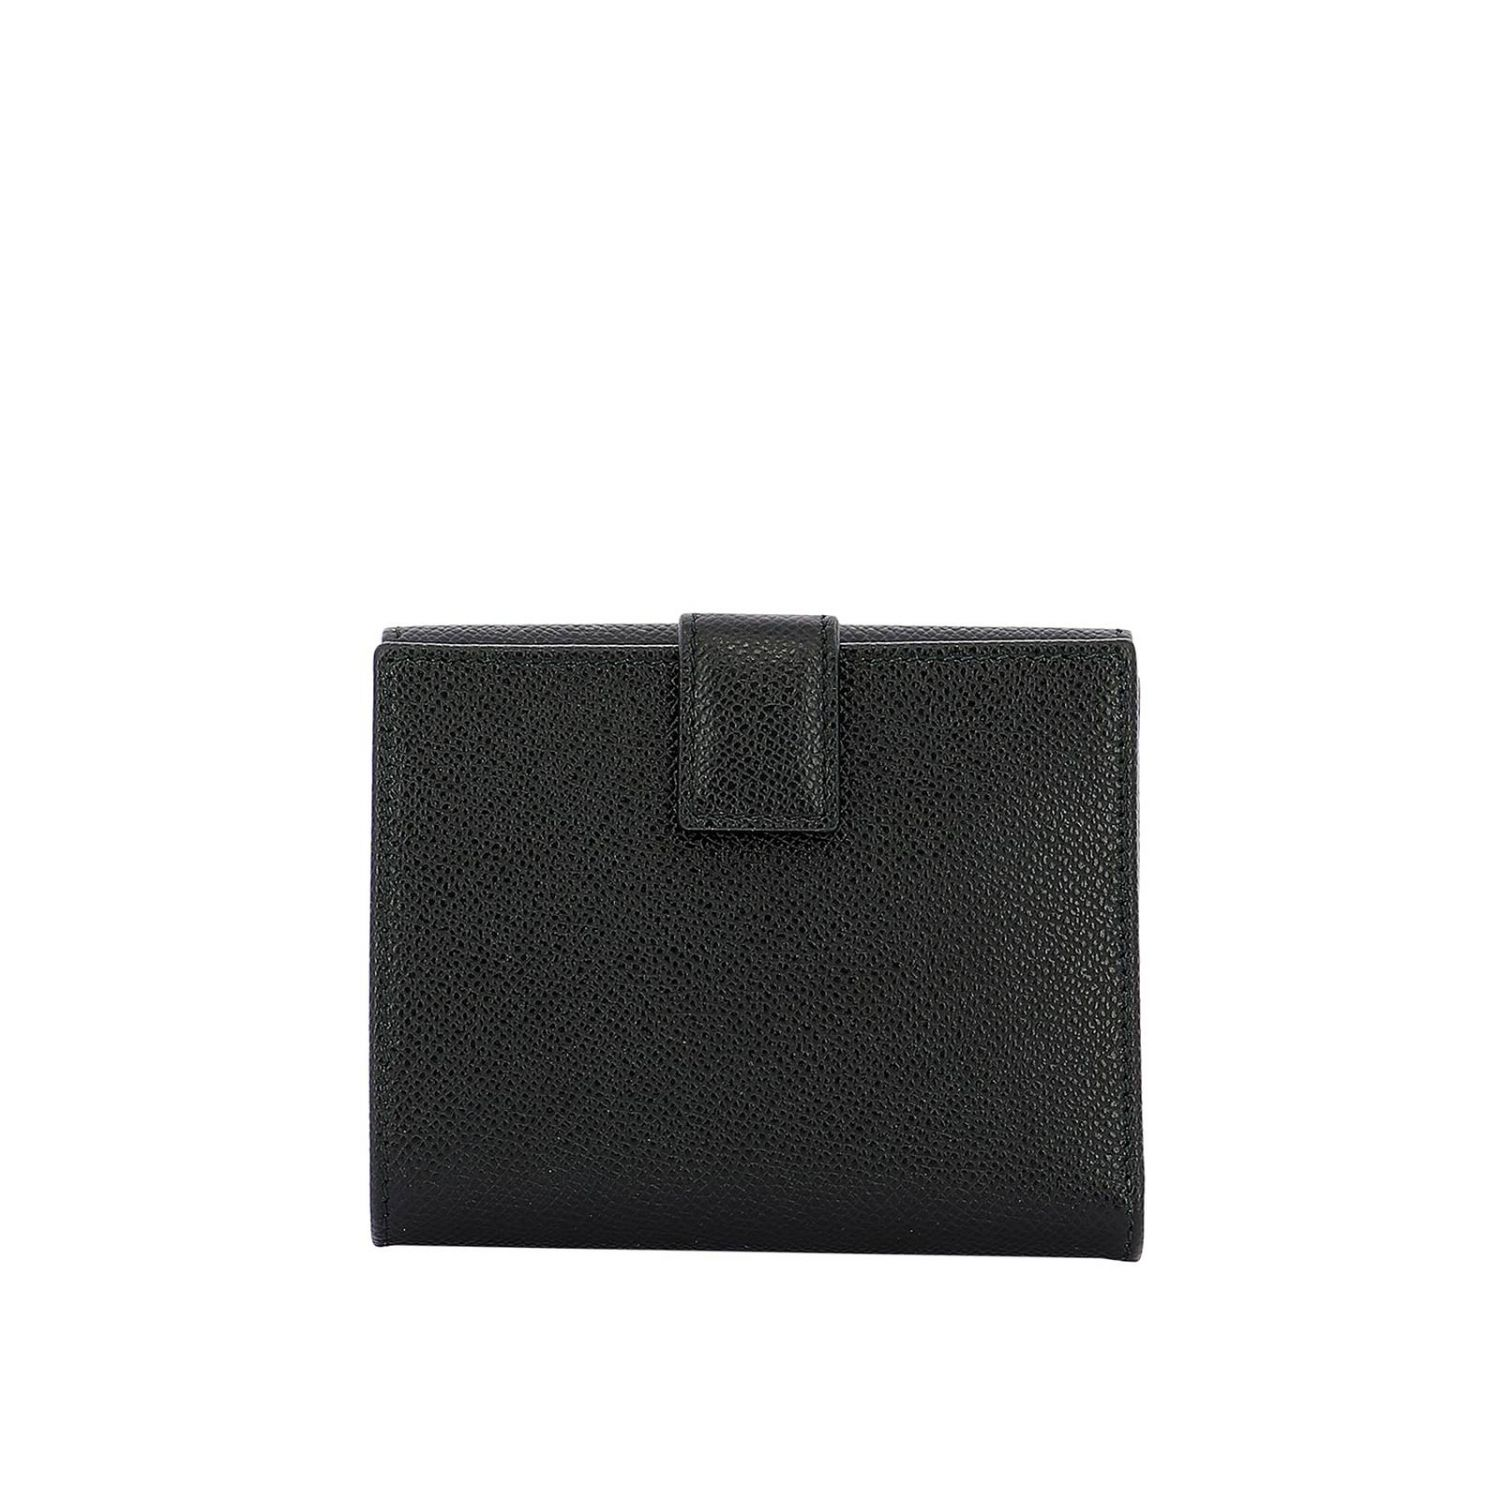 Wallet women Salvatore Ferragamo black 2